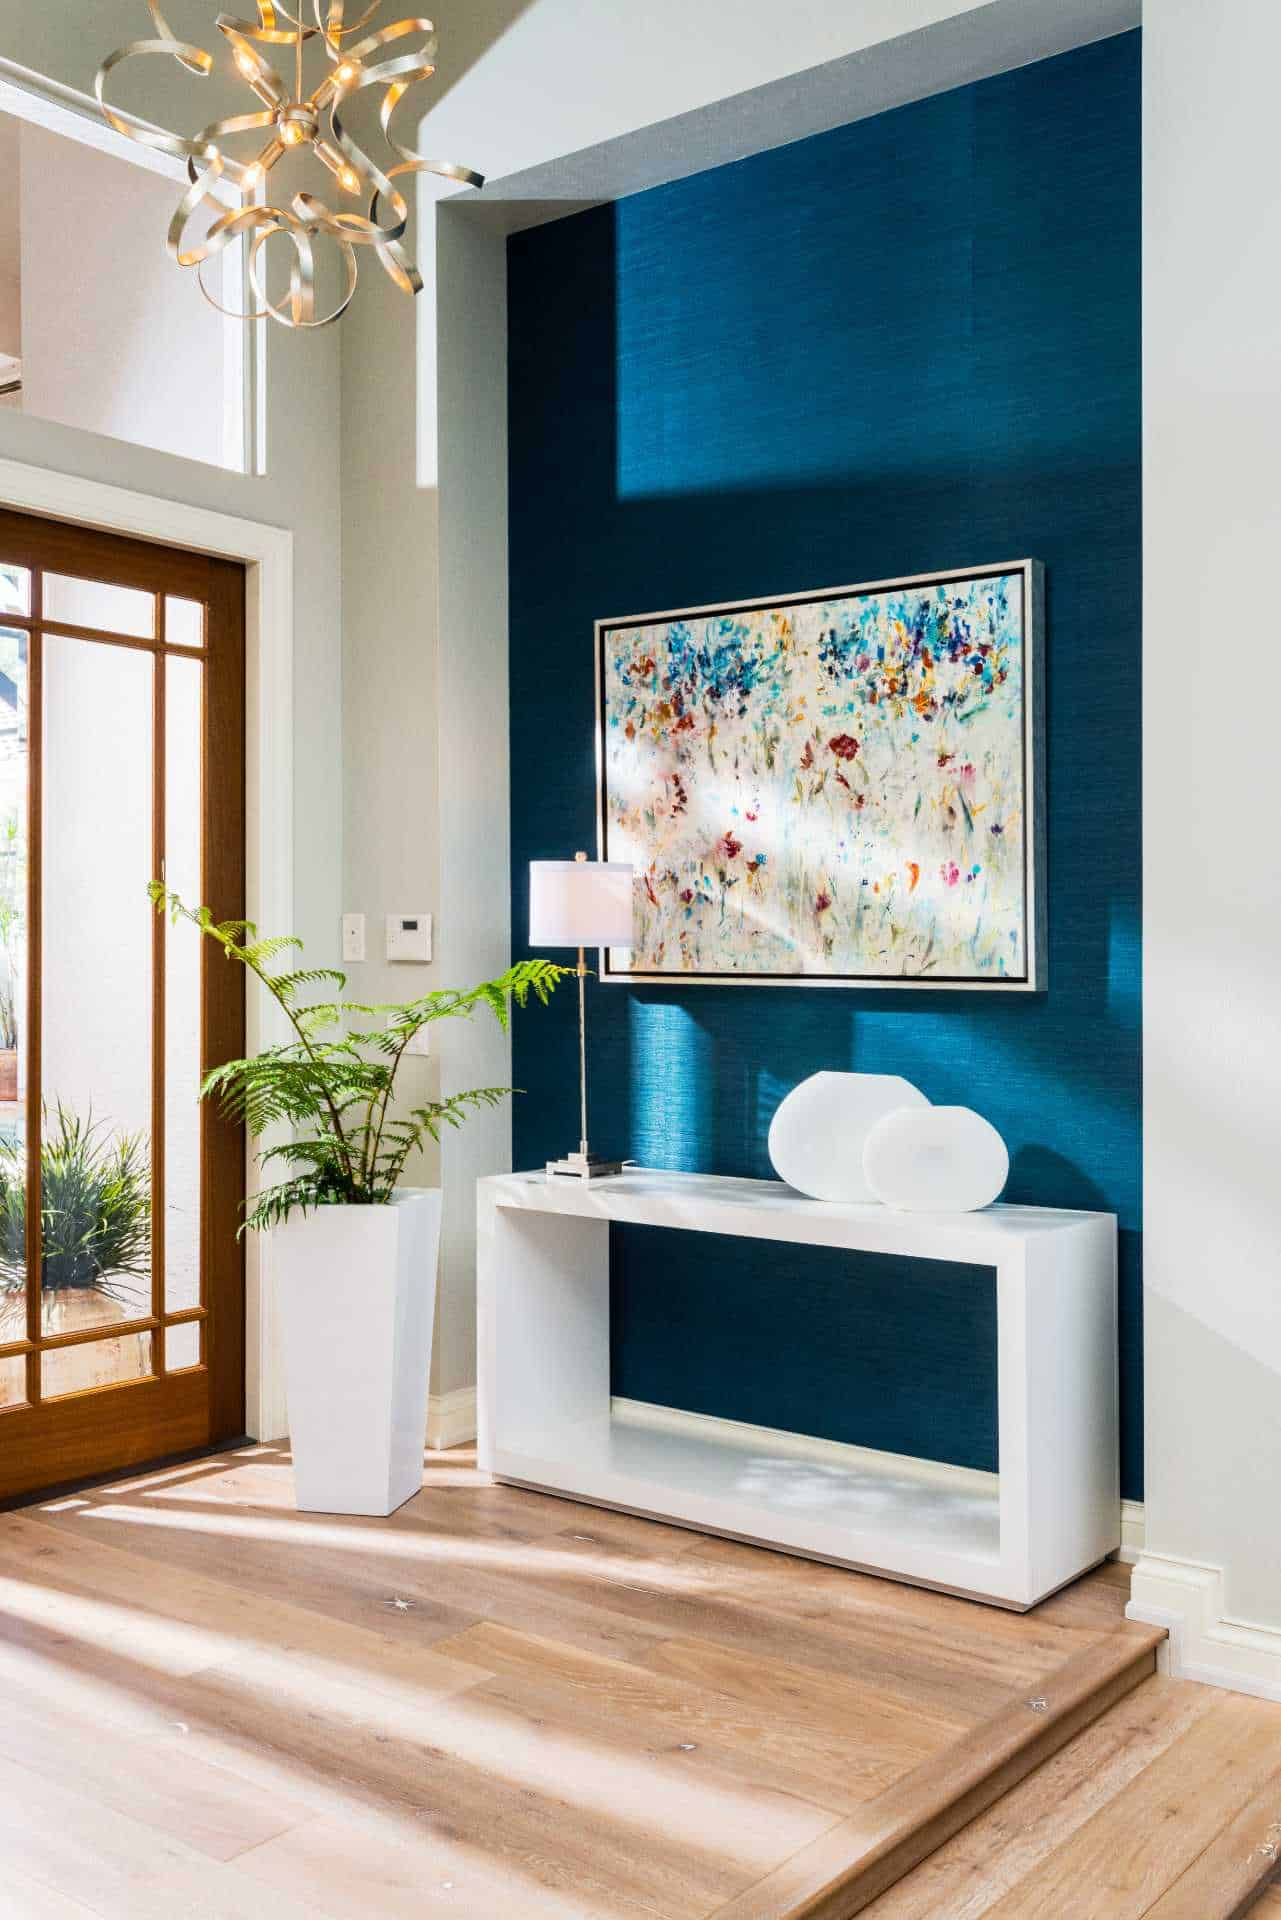 Entryway with lighting and contemporary furniture